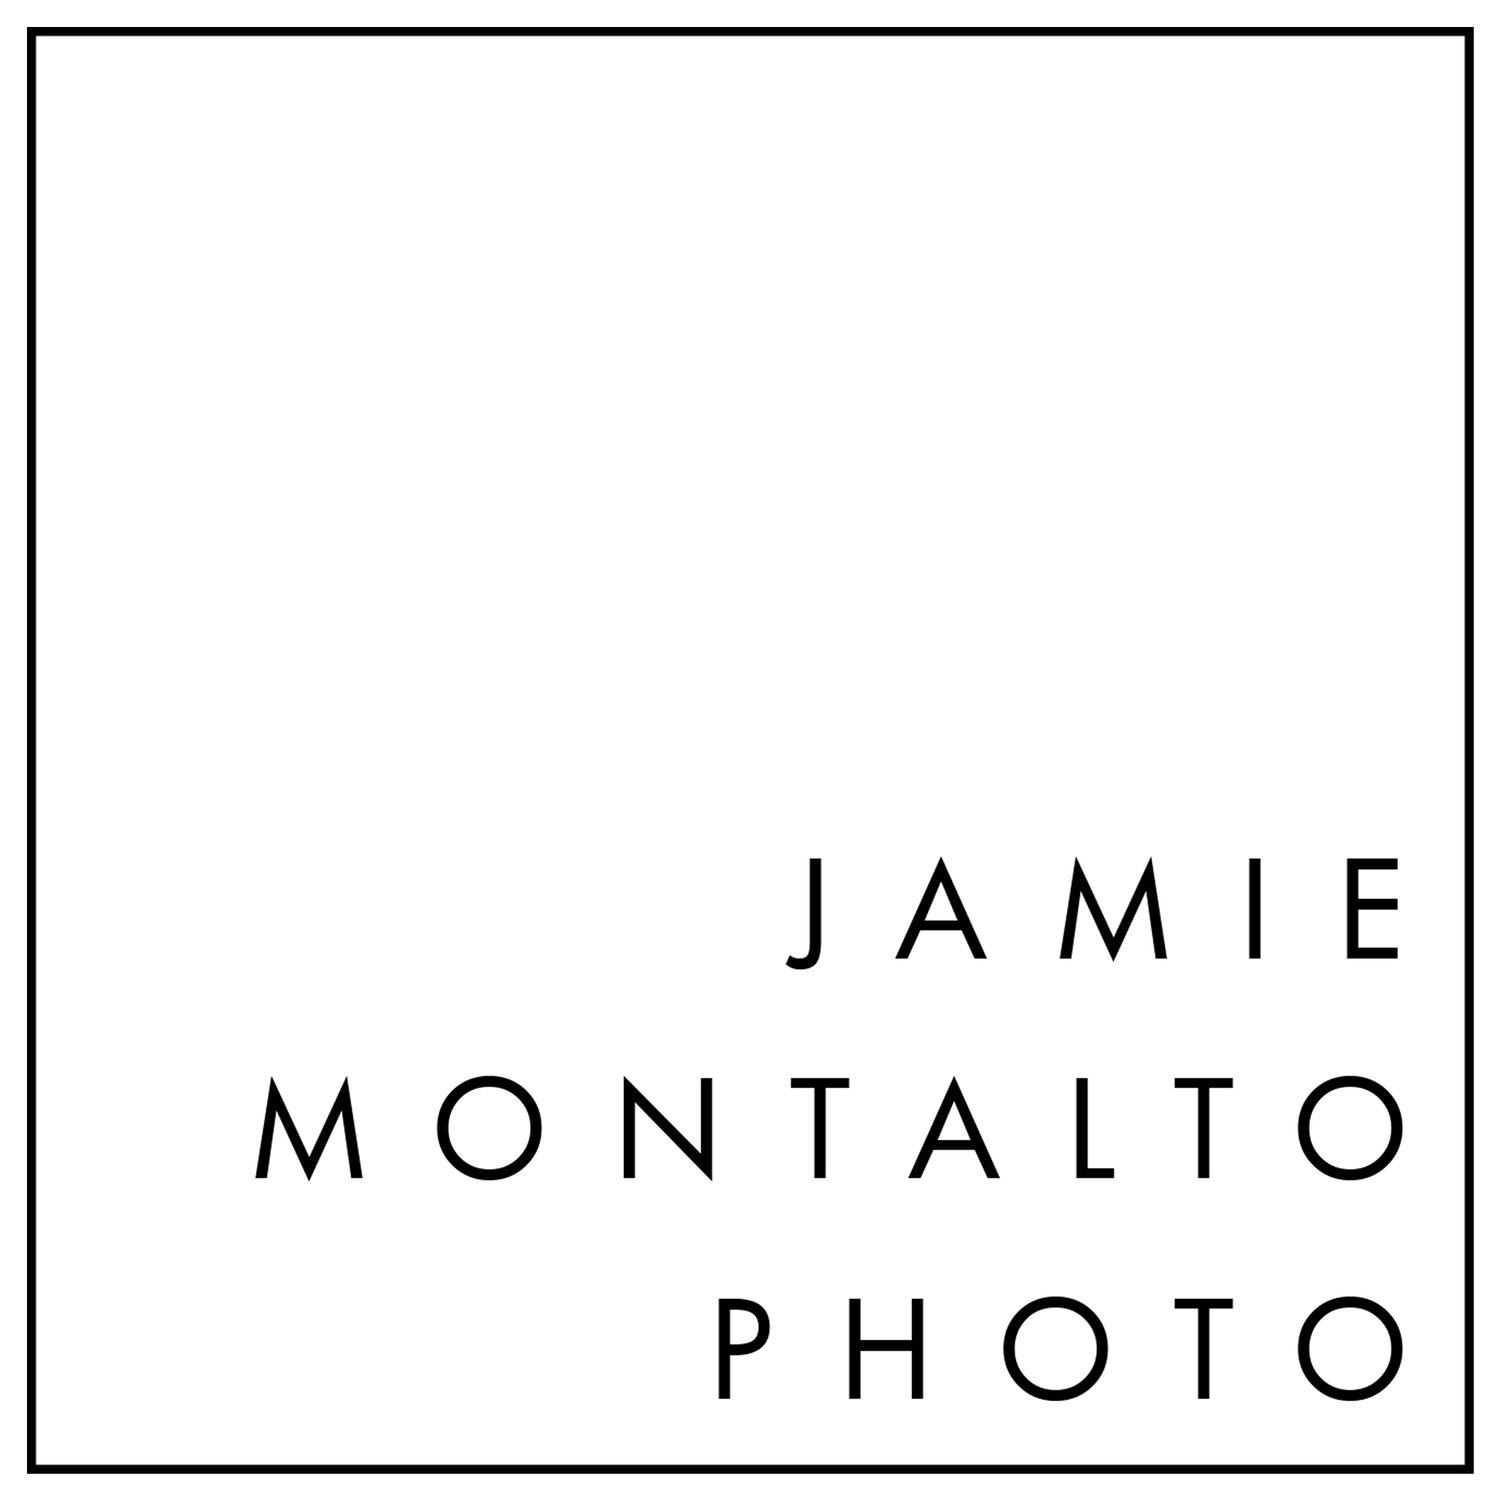 Jamie Montalto Photo